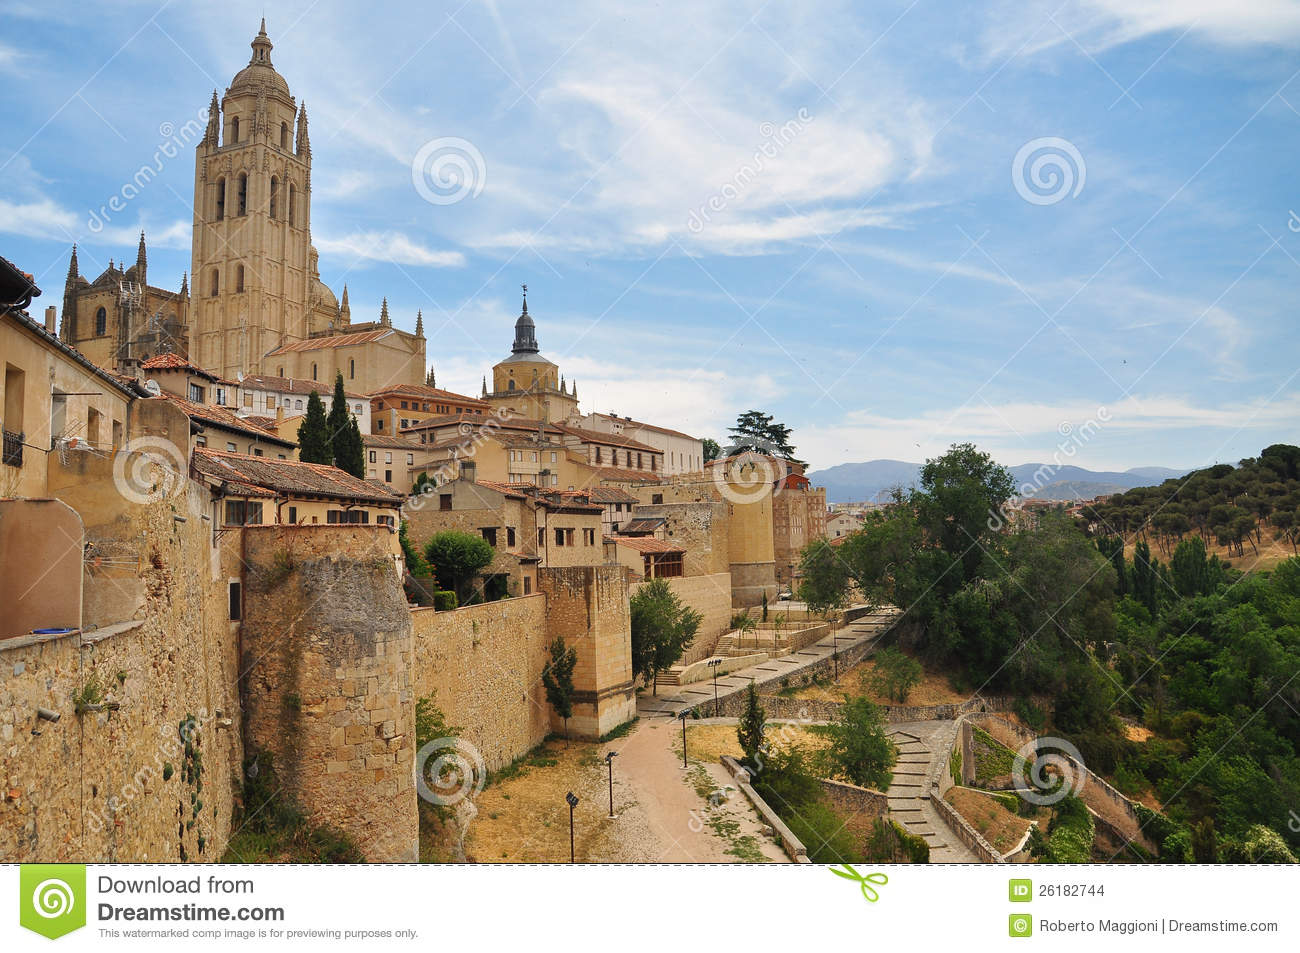 Segovia View Of The Old Town. Castile, Spain Stock Images - Imagecastile town